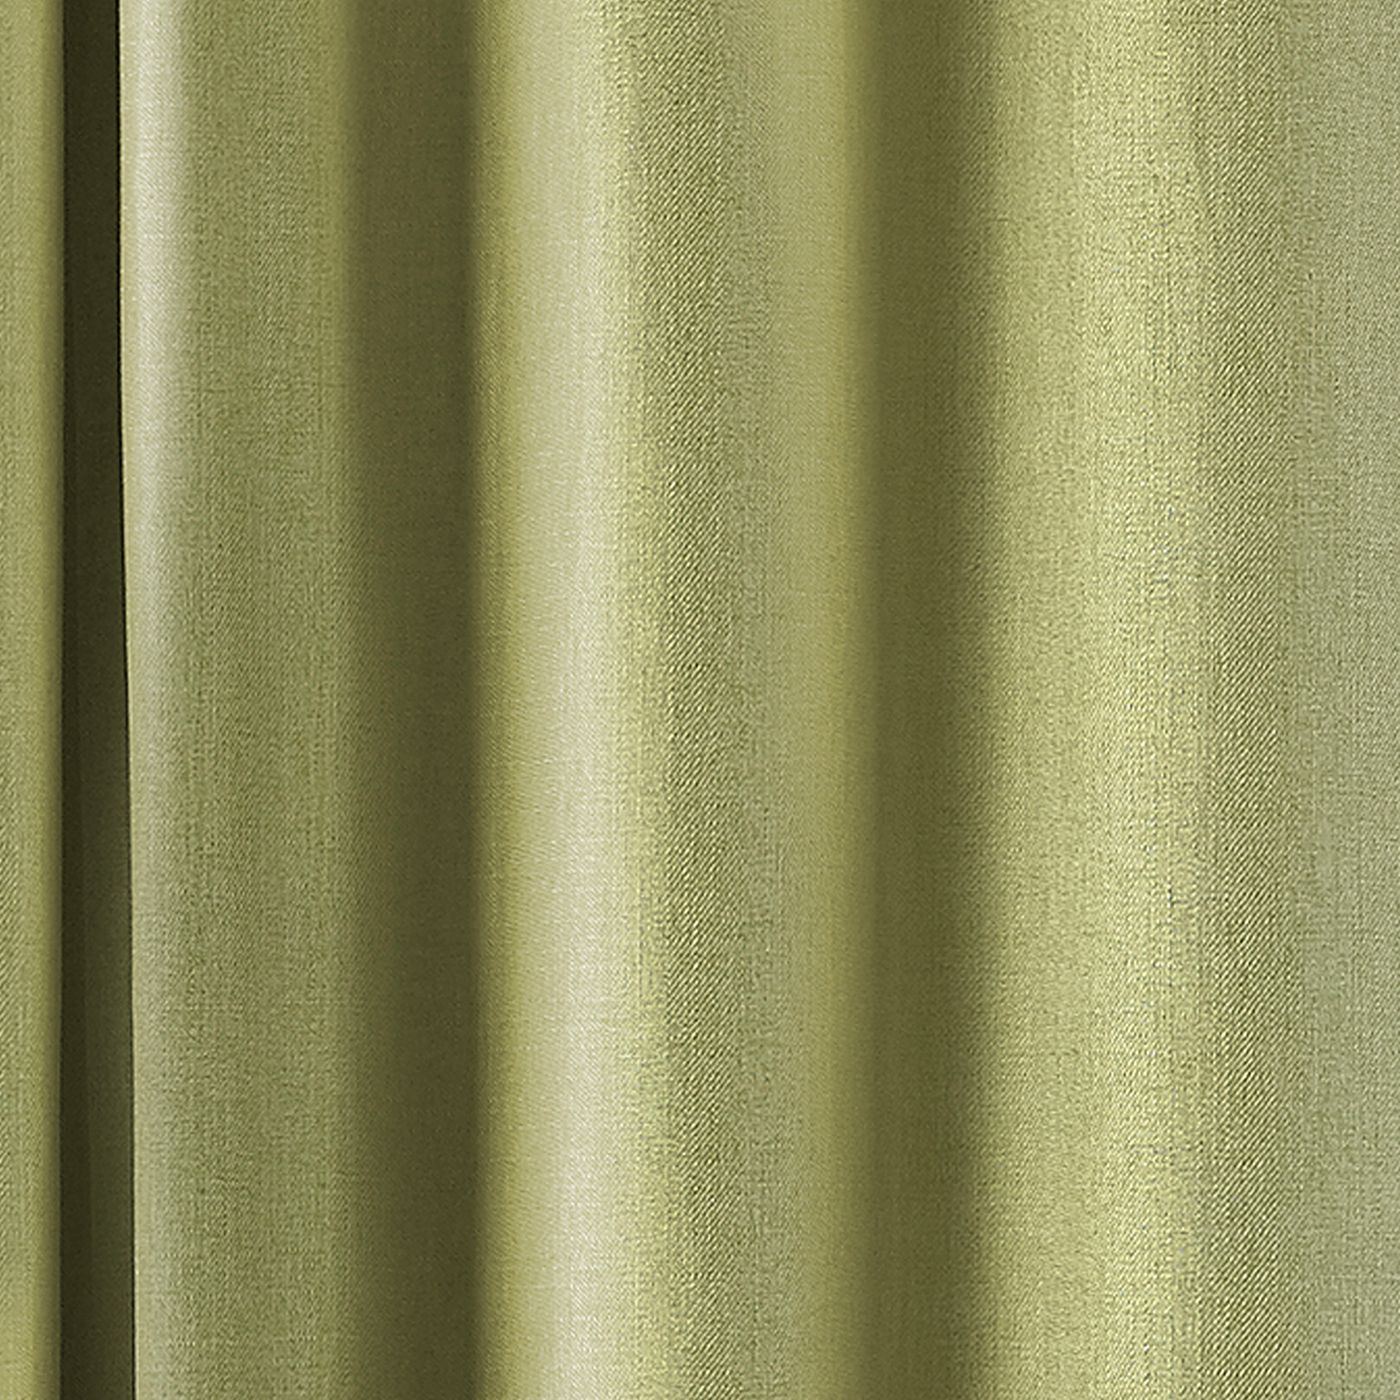 Atlantic Twill Woven Eyelet Curtains in Green